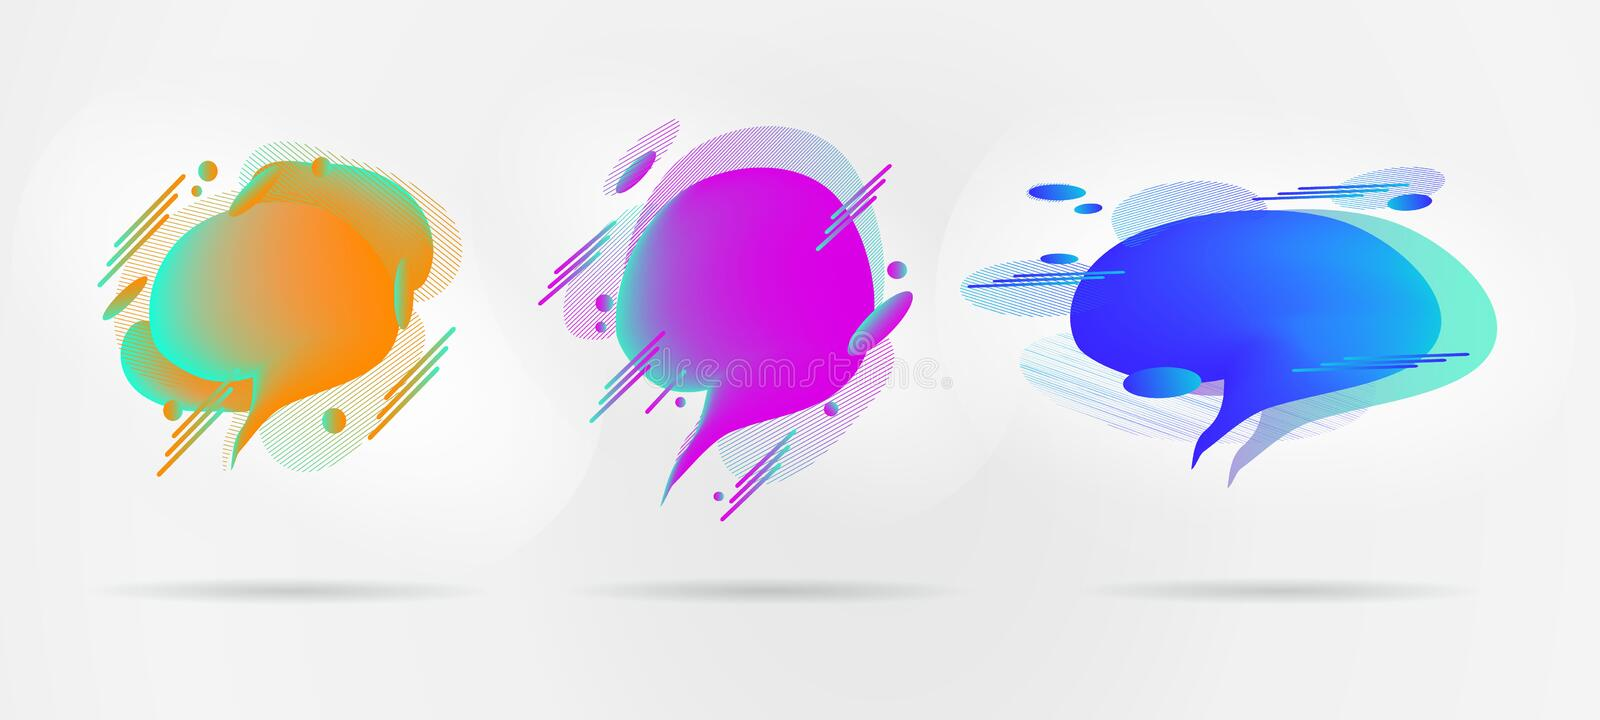 Modern design elements, geometric web symbols in the style of realism for design, social networks. Vivid gradient bright geometric spots isolated on light royalty free illustration